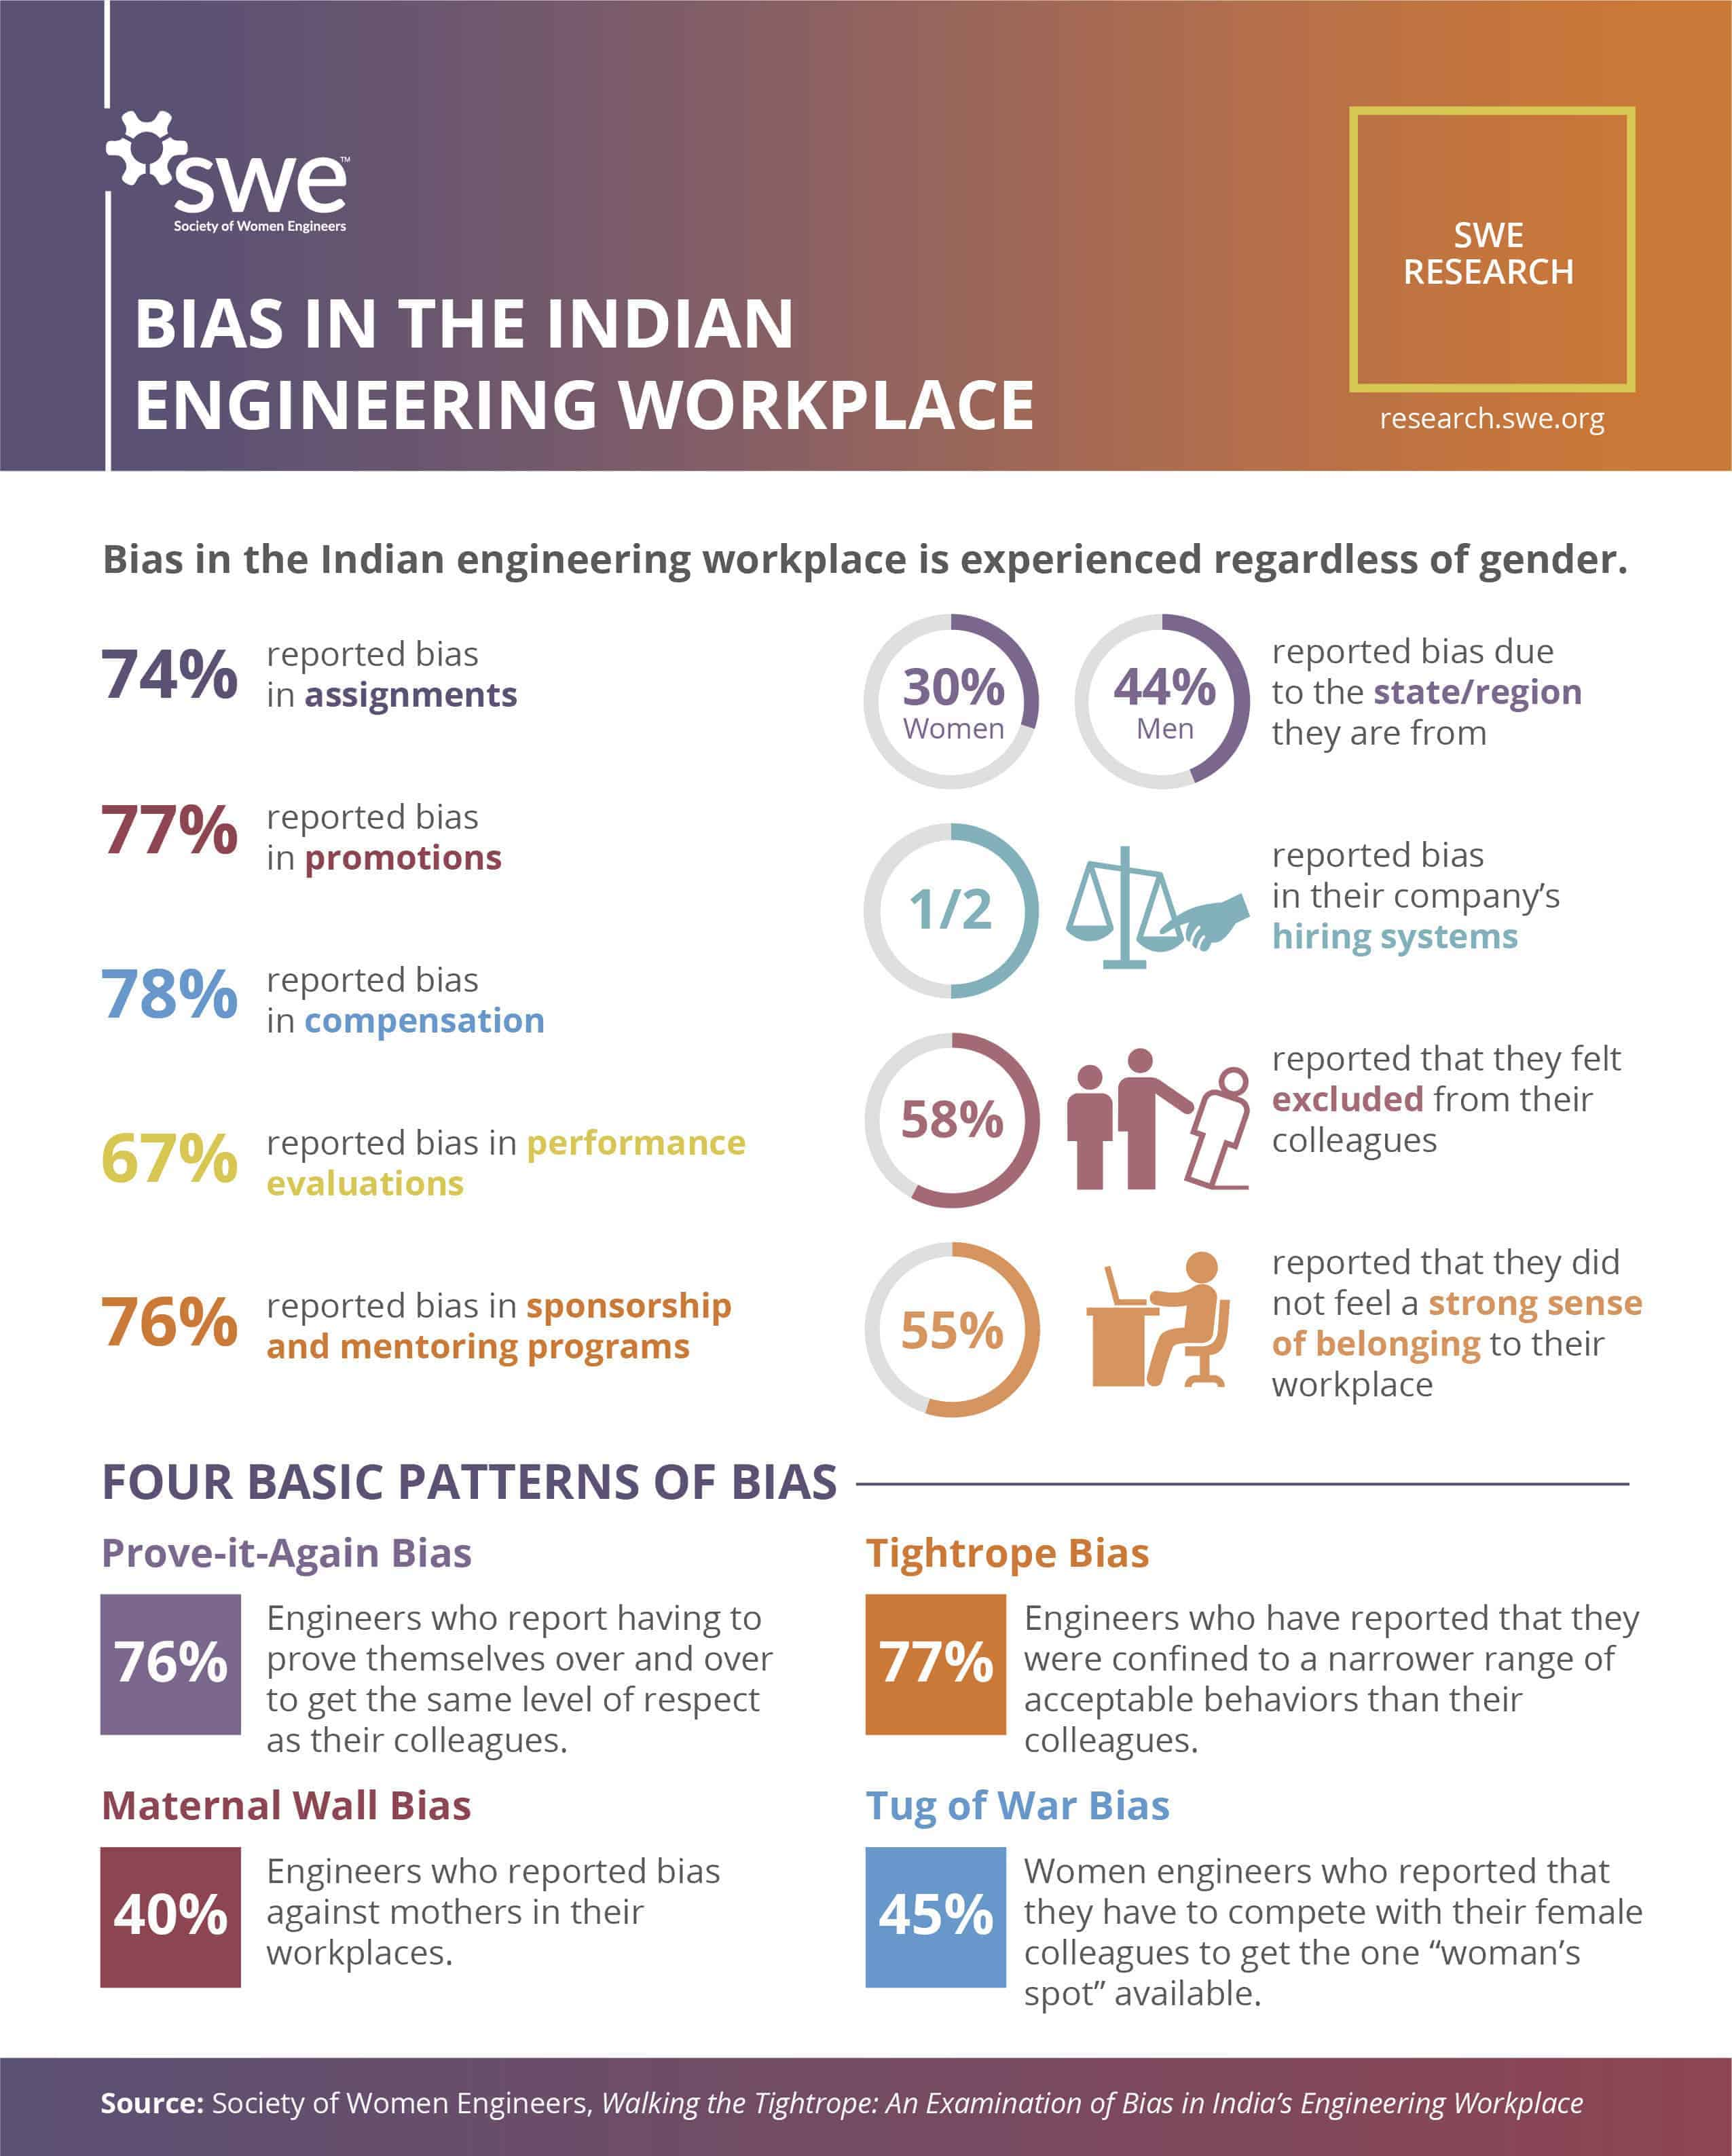 Engineers are facing high level of biases at work in India, finds survey